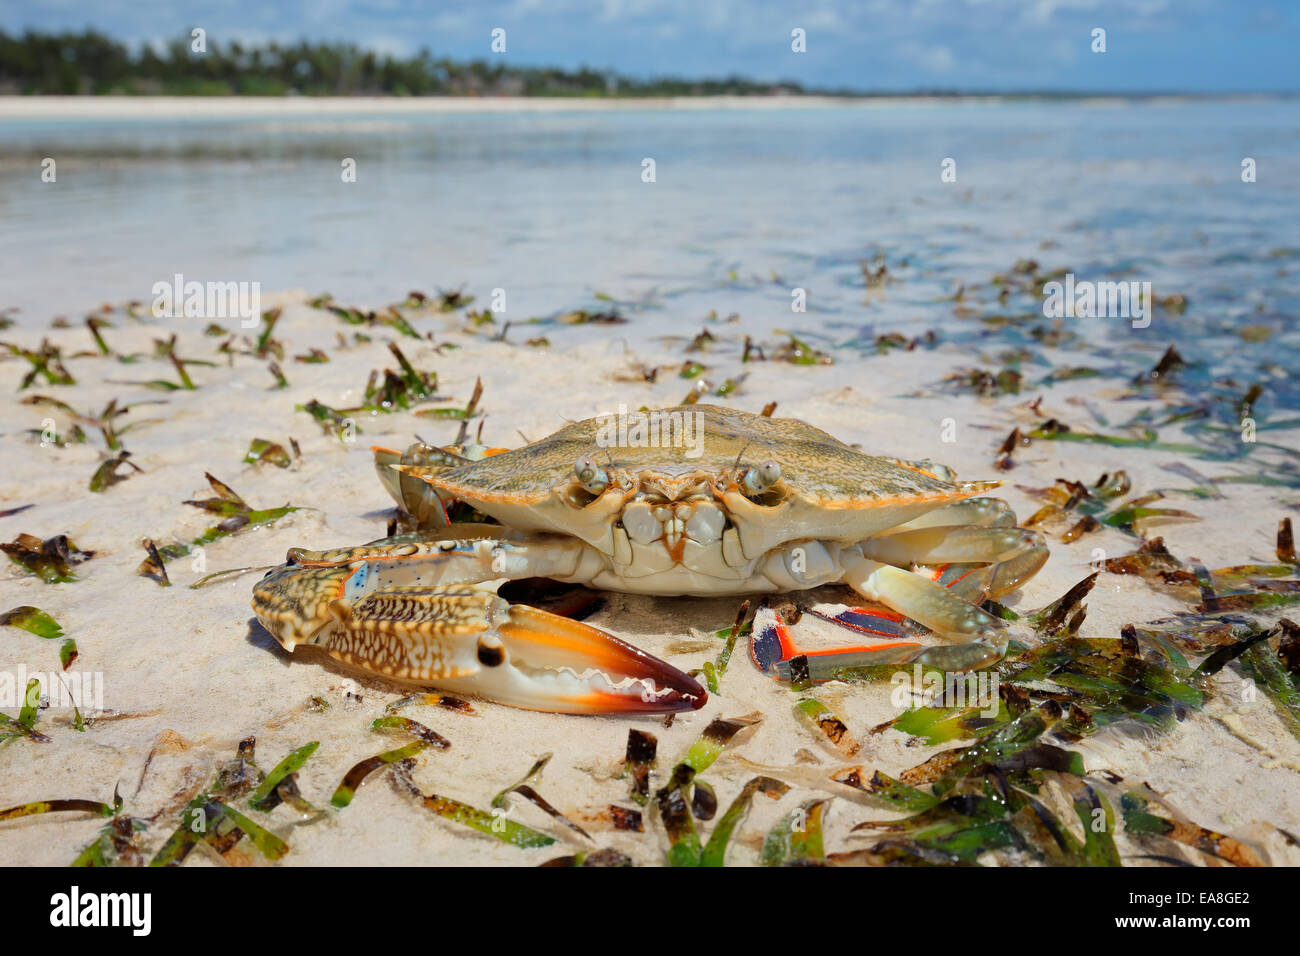 Large swimming crab on the beach, Zanzibar island - Stock Image